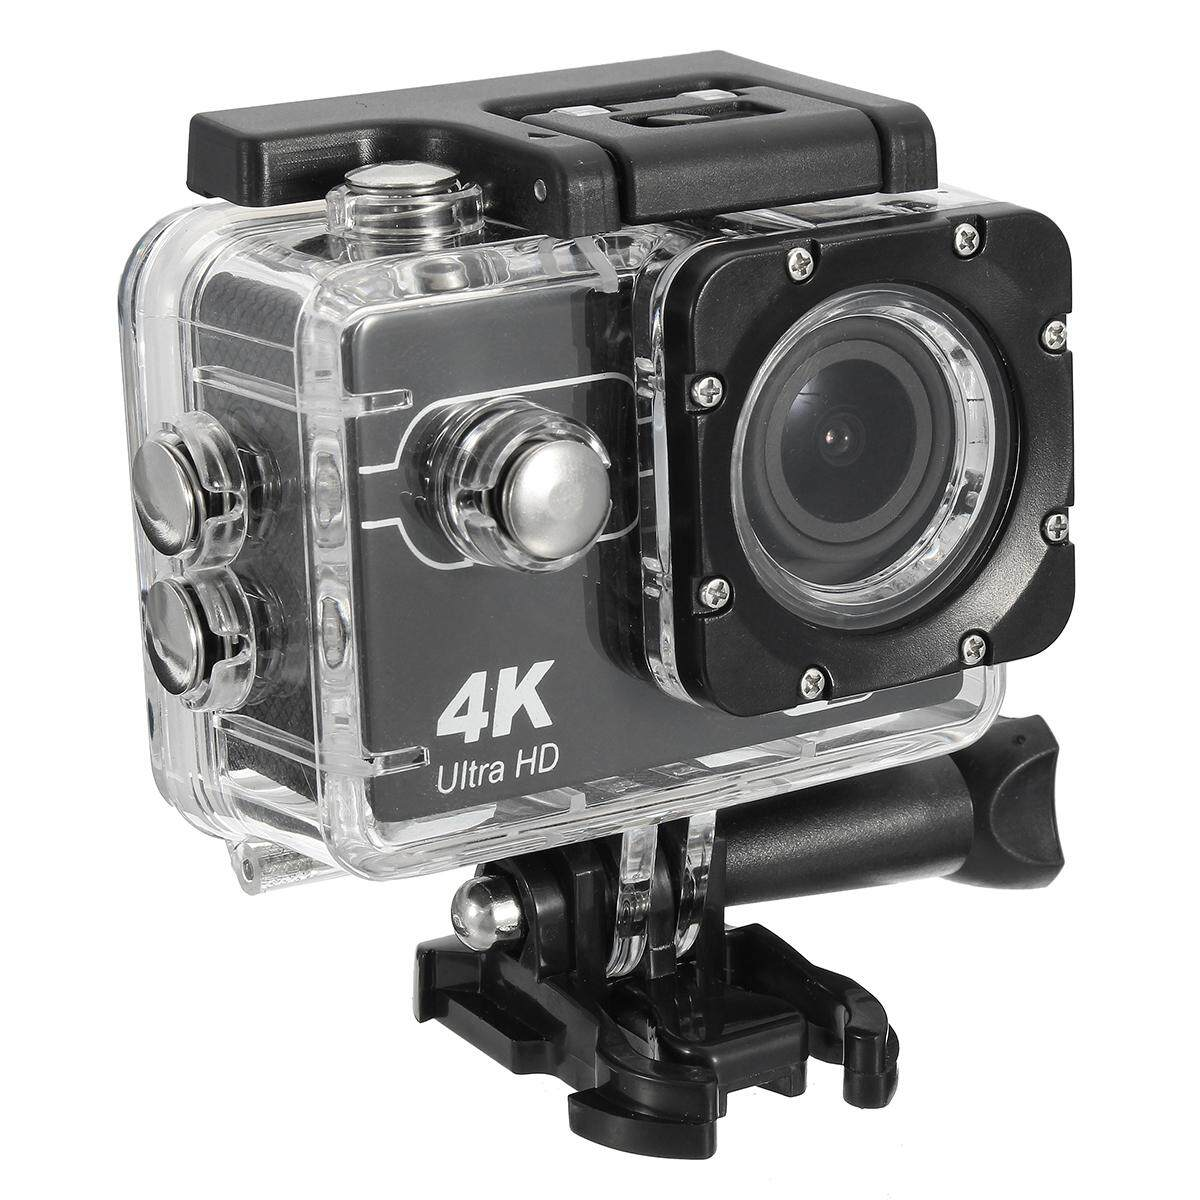 Action Cam For Sale Camcorder Prices Brands Specs In Kamera Sport Go Pro Kogan 4k Ultra Hd Wifi 1080p Waterproof Sports Video Camera Fit Hot